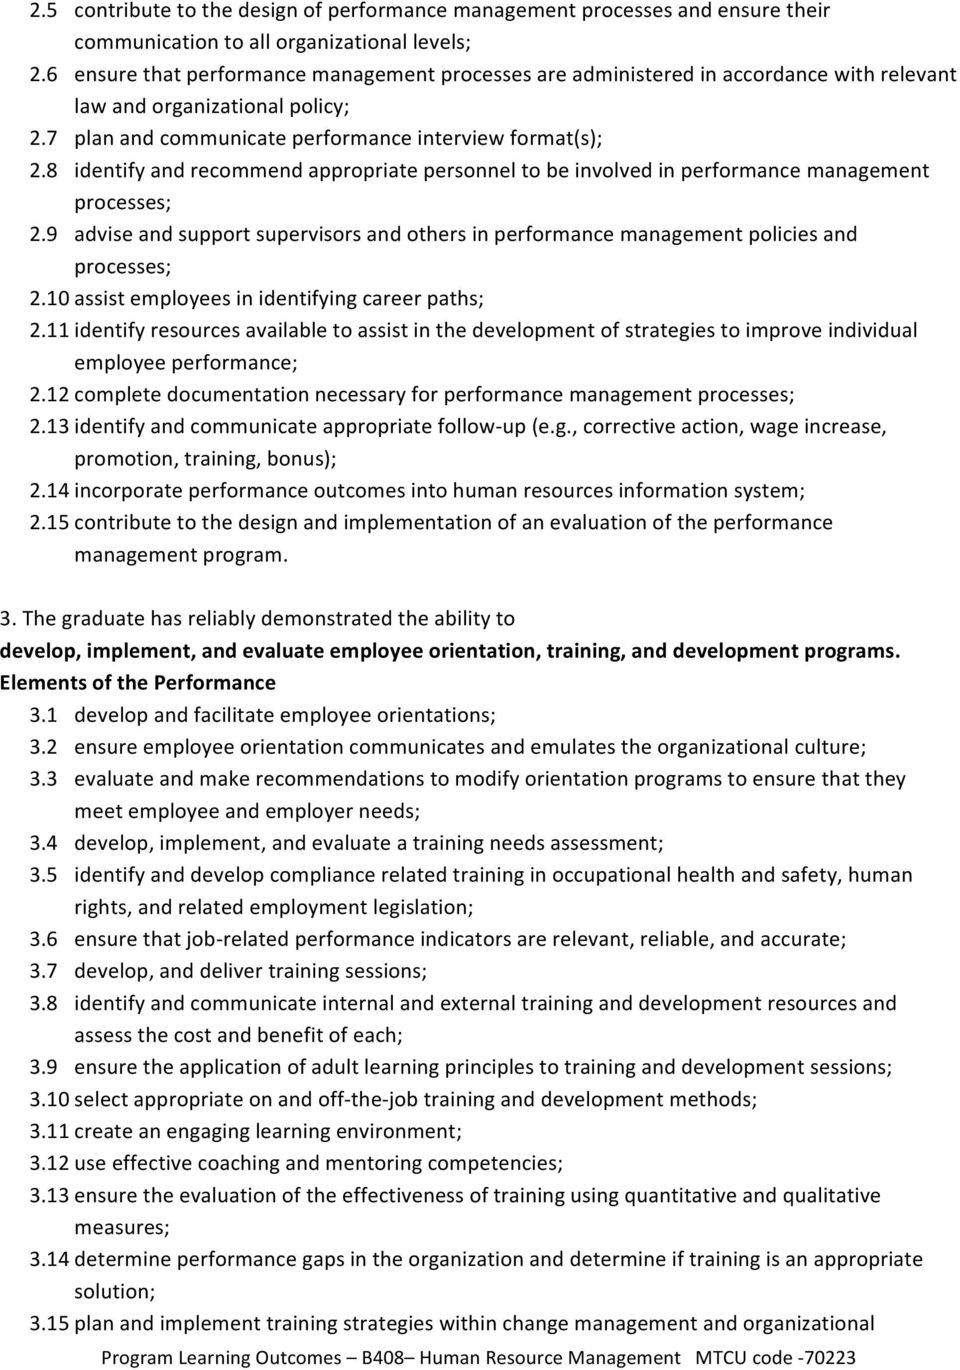 8 identify and recommend appropriate personnel to be involved in performance management processes; 2.9 advise and support supervisors and others in performance management policies and processes; 2.